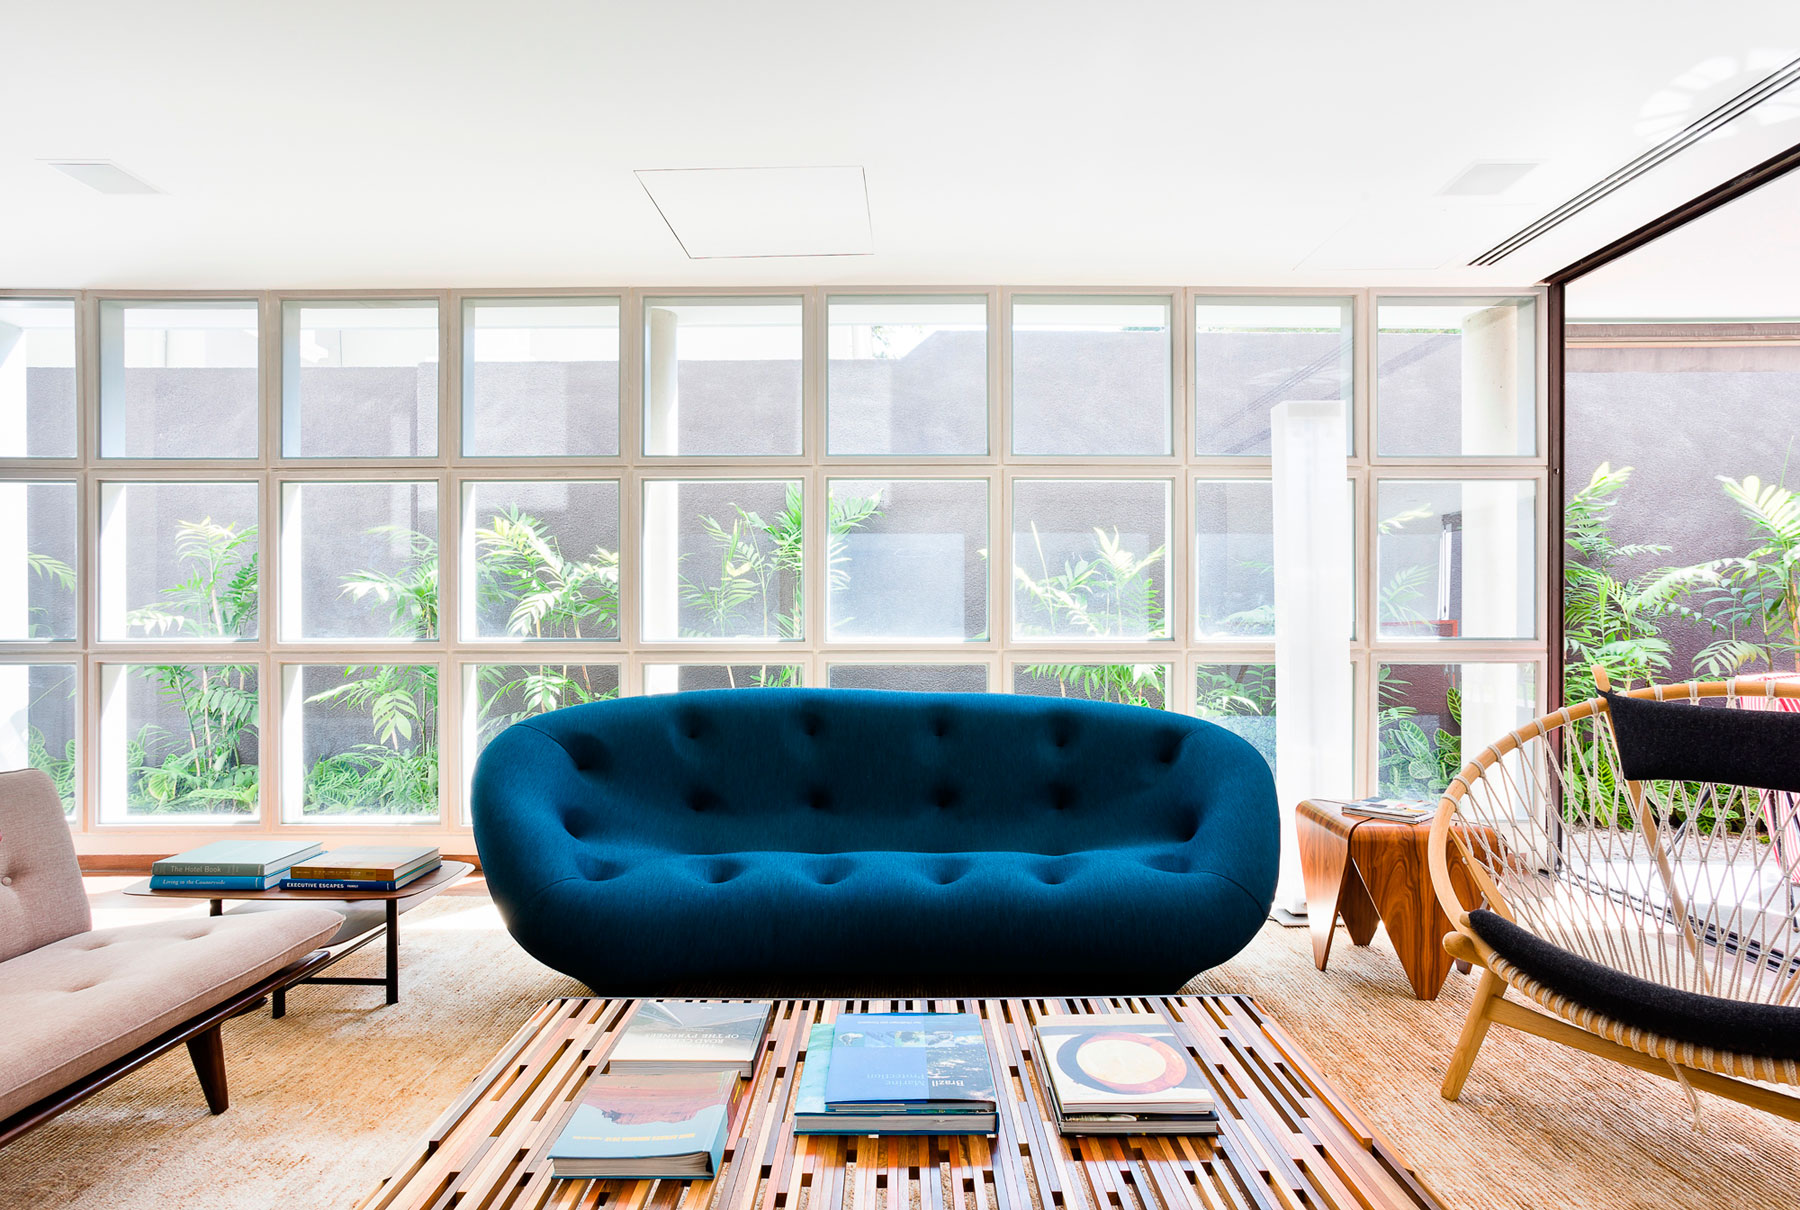 Pascali Semerdjian Architects Design an Airy Private Residence in São Paulo